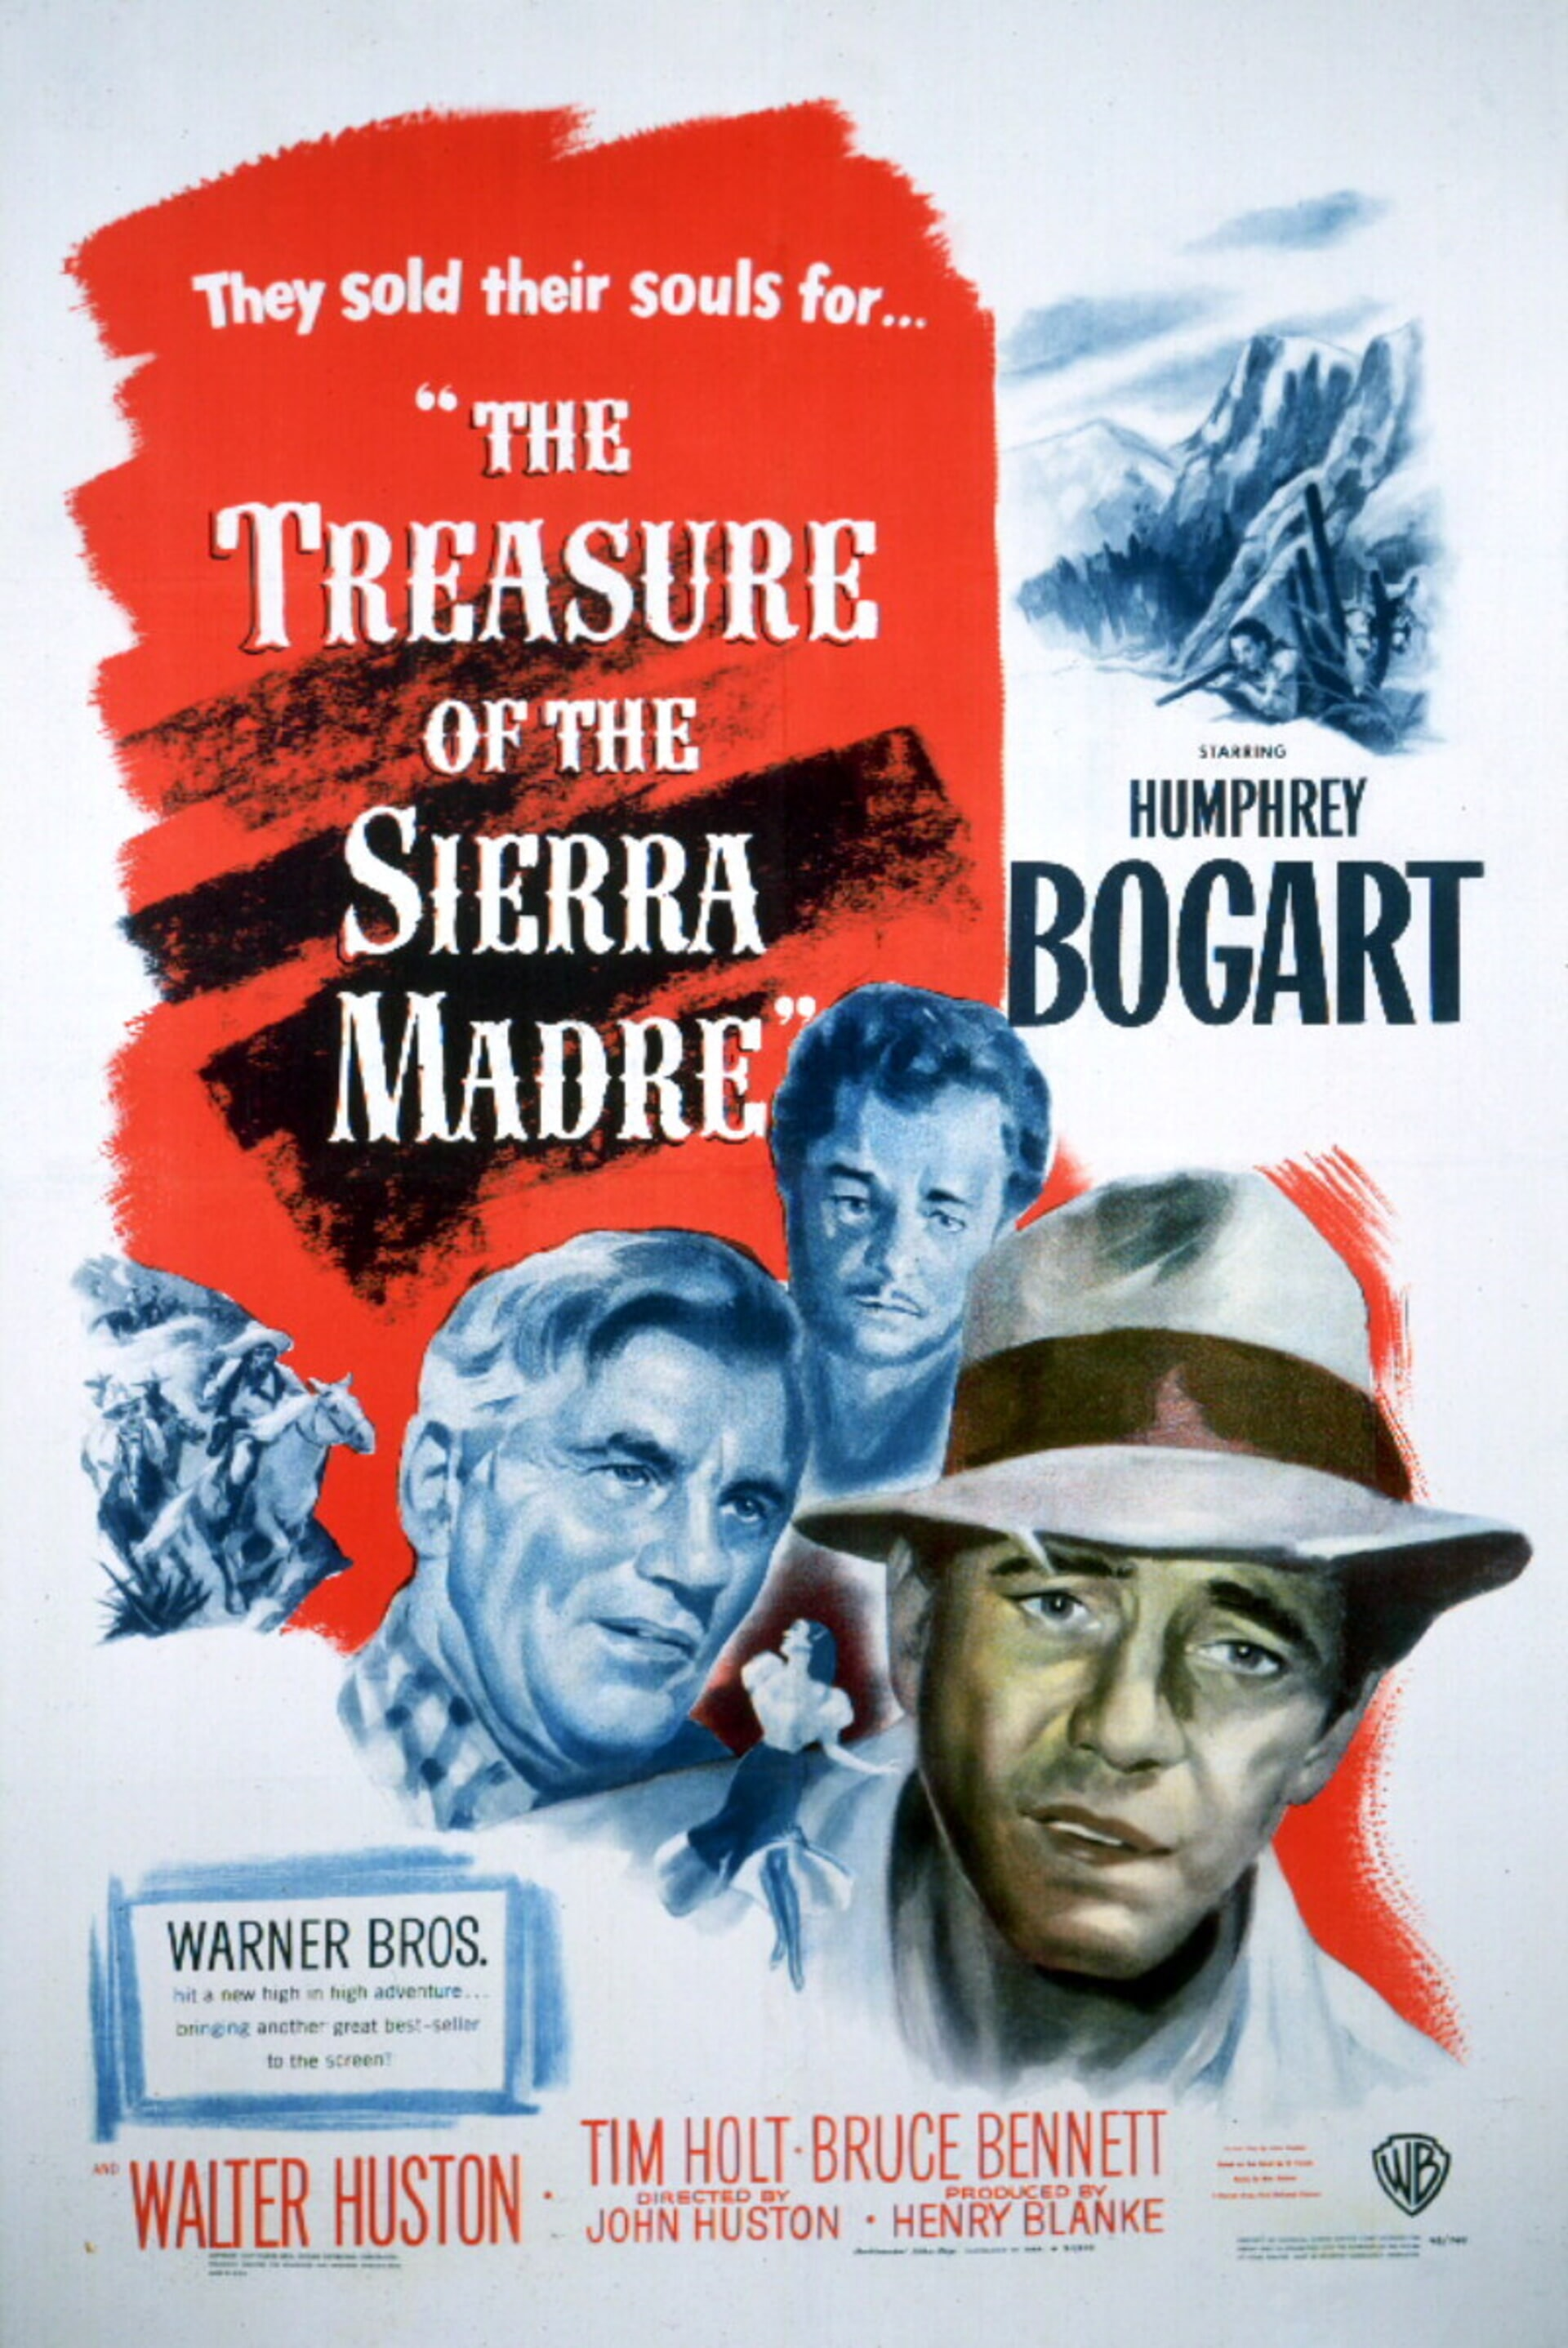 The Treaure of the Sierra Madre - Poster 1